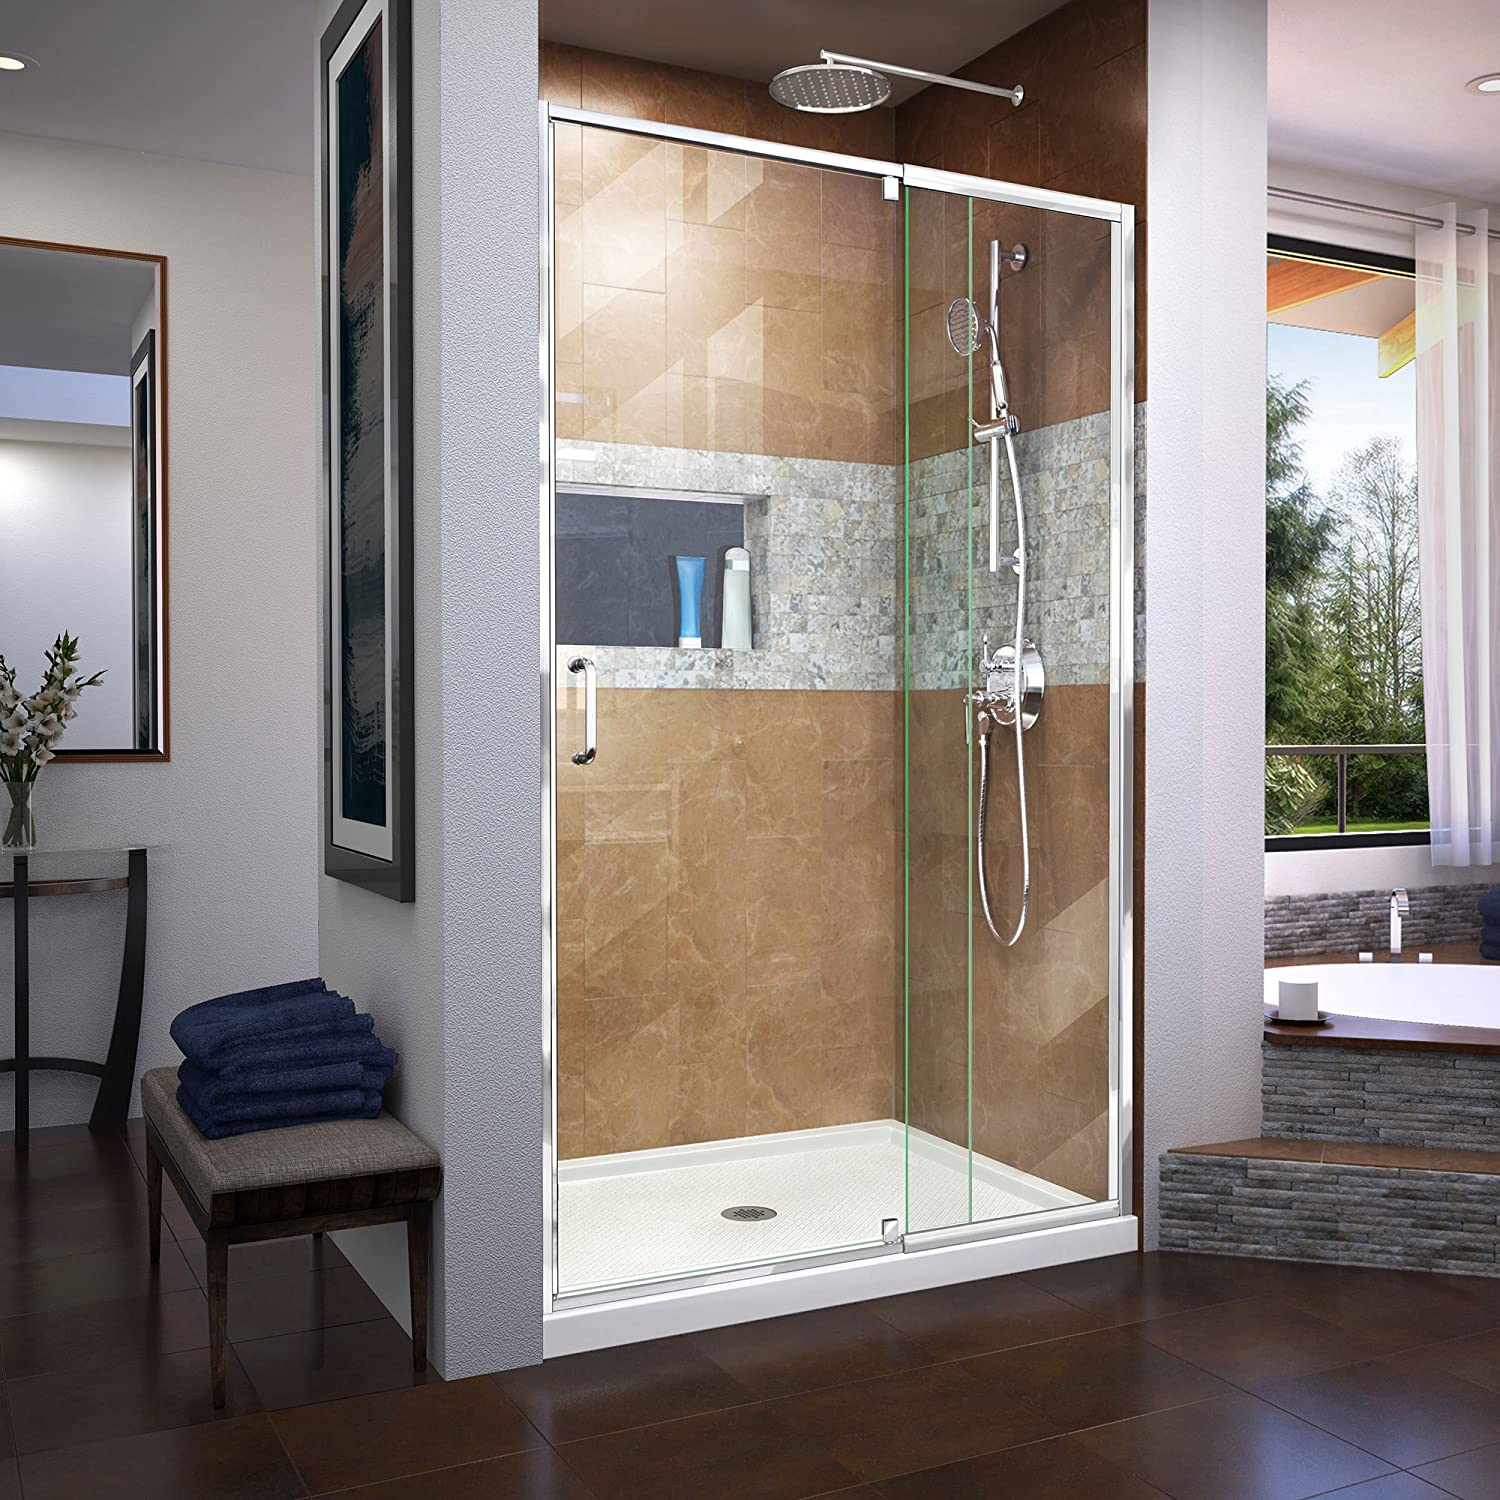 DreamLine SHDR-22427200-01 Flex 38-42 in. W x 72 in. H Semi-Frameless Pivot Shower Door in Chrome